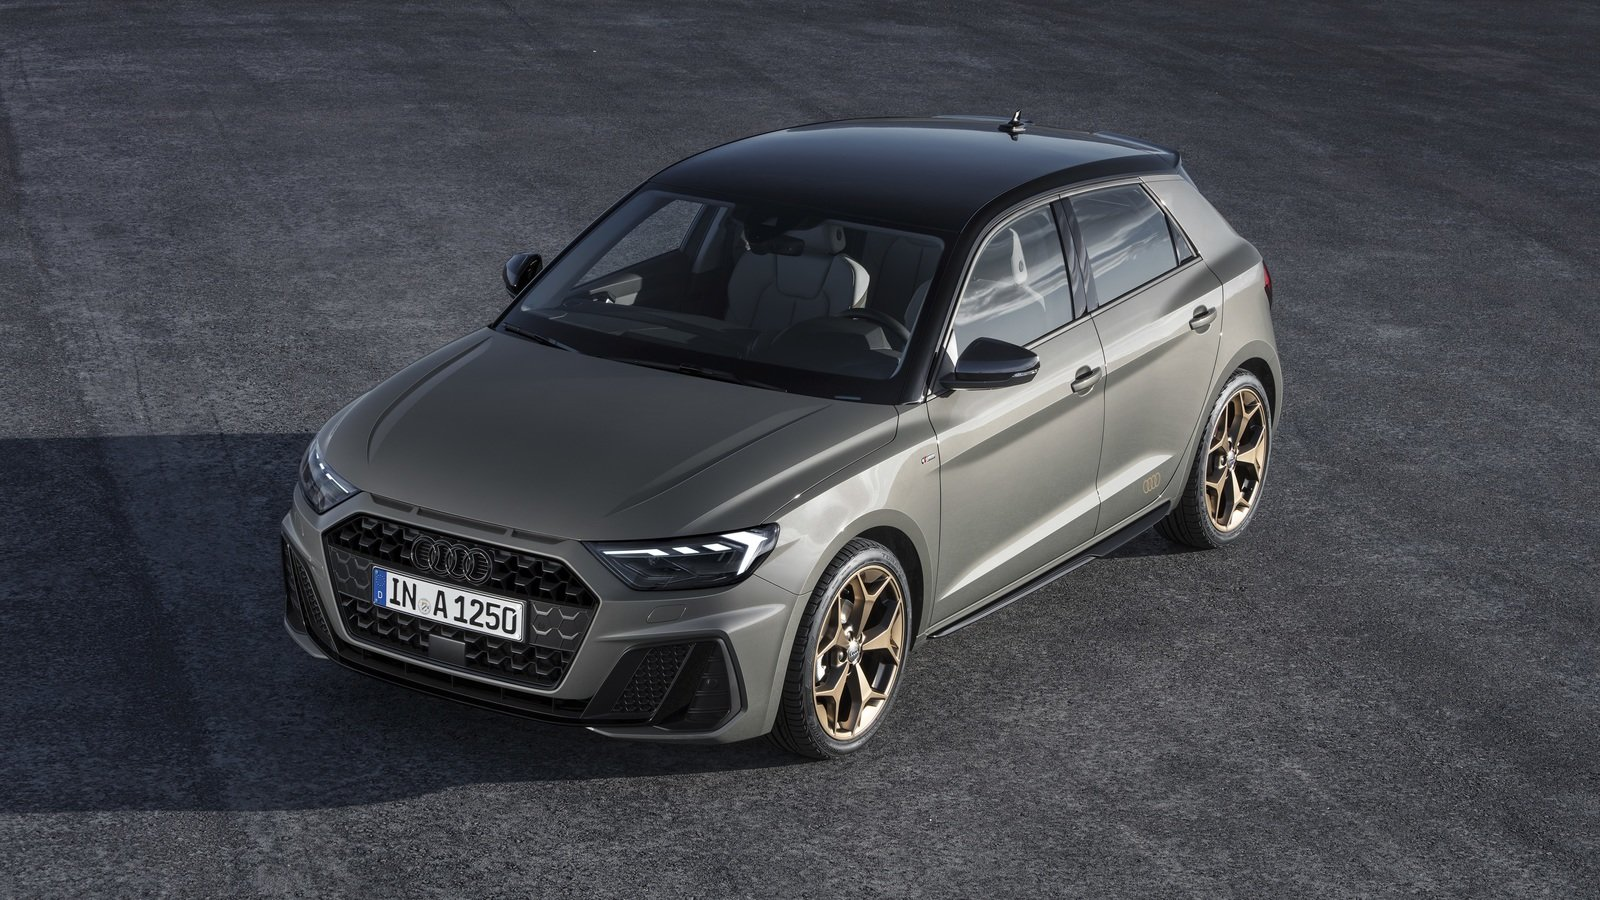 Audi A1 Latest News Reviews Specifications Prices Photos And Videos Top Speed